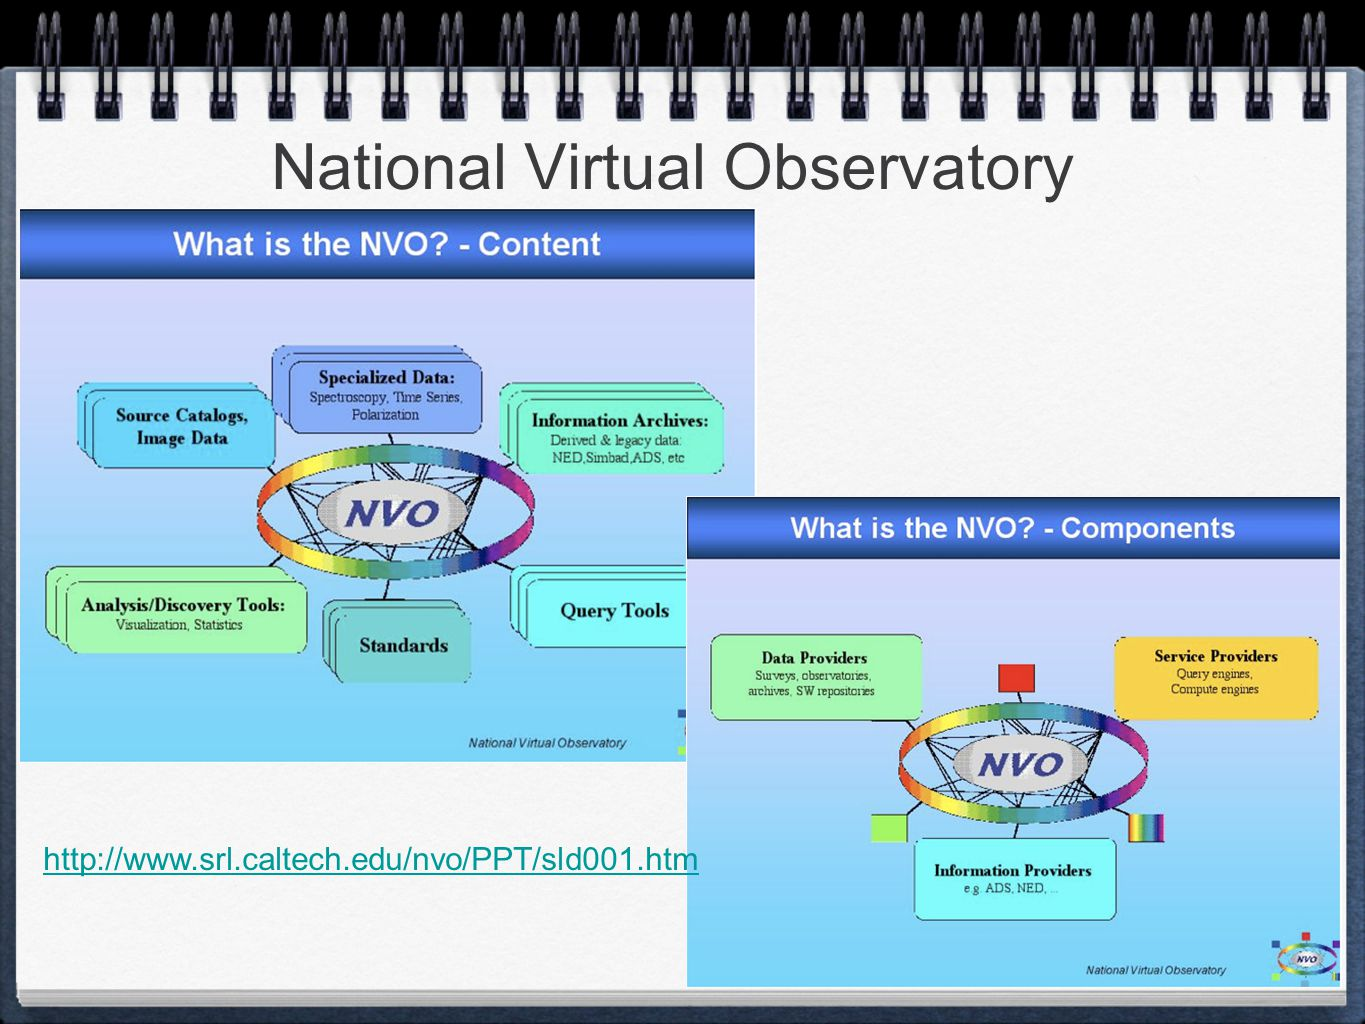 National Virtual Observatory http://www.srl.caltech.edu/nvo/PPT/sld001.htm